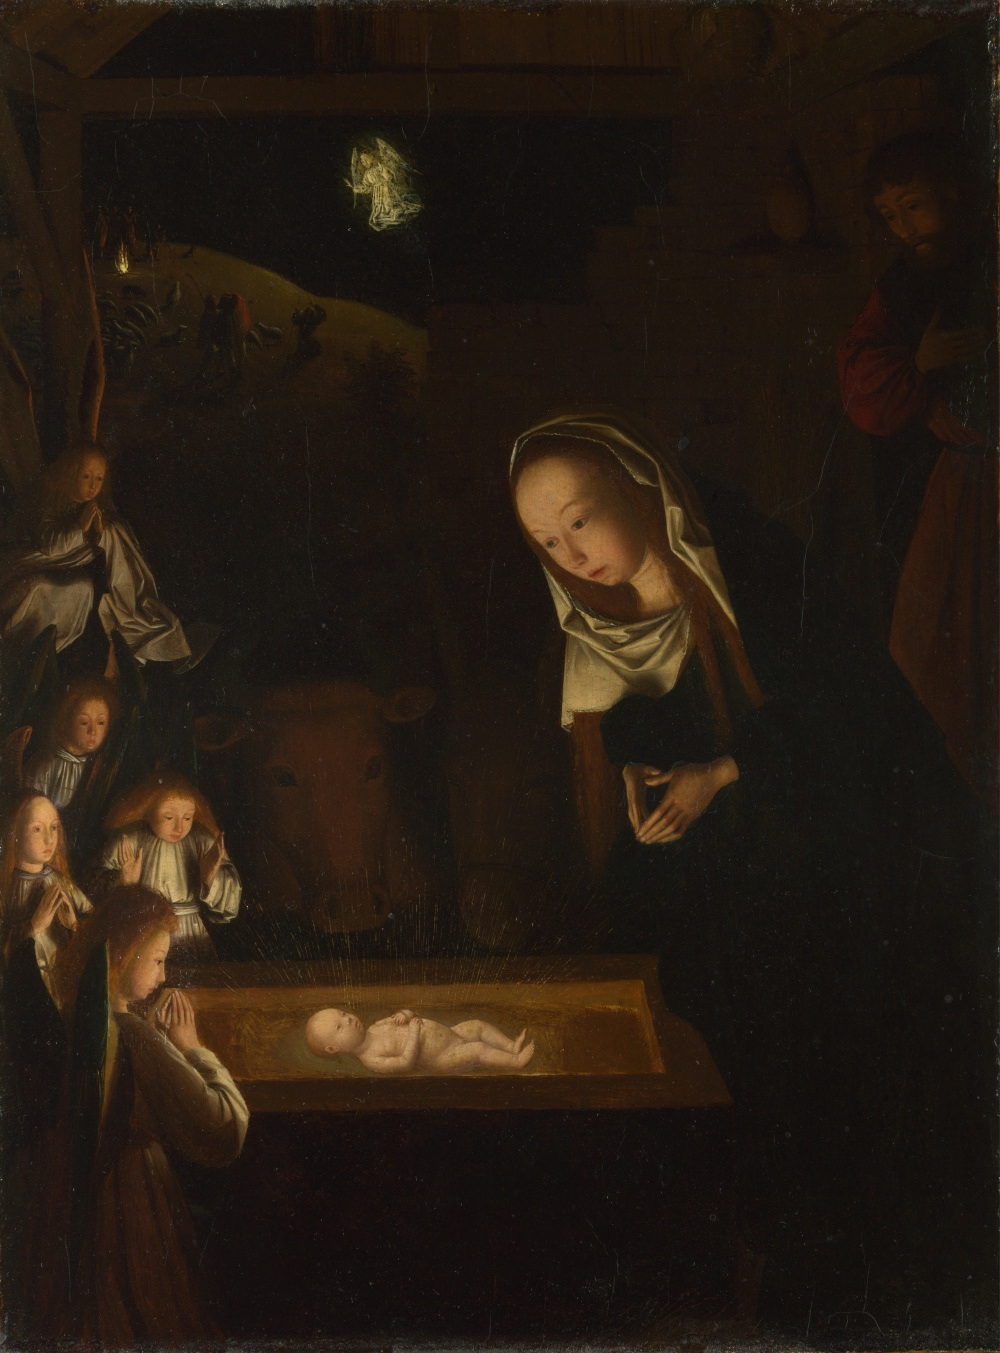 Nativity at Night